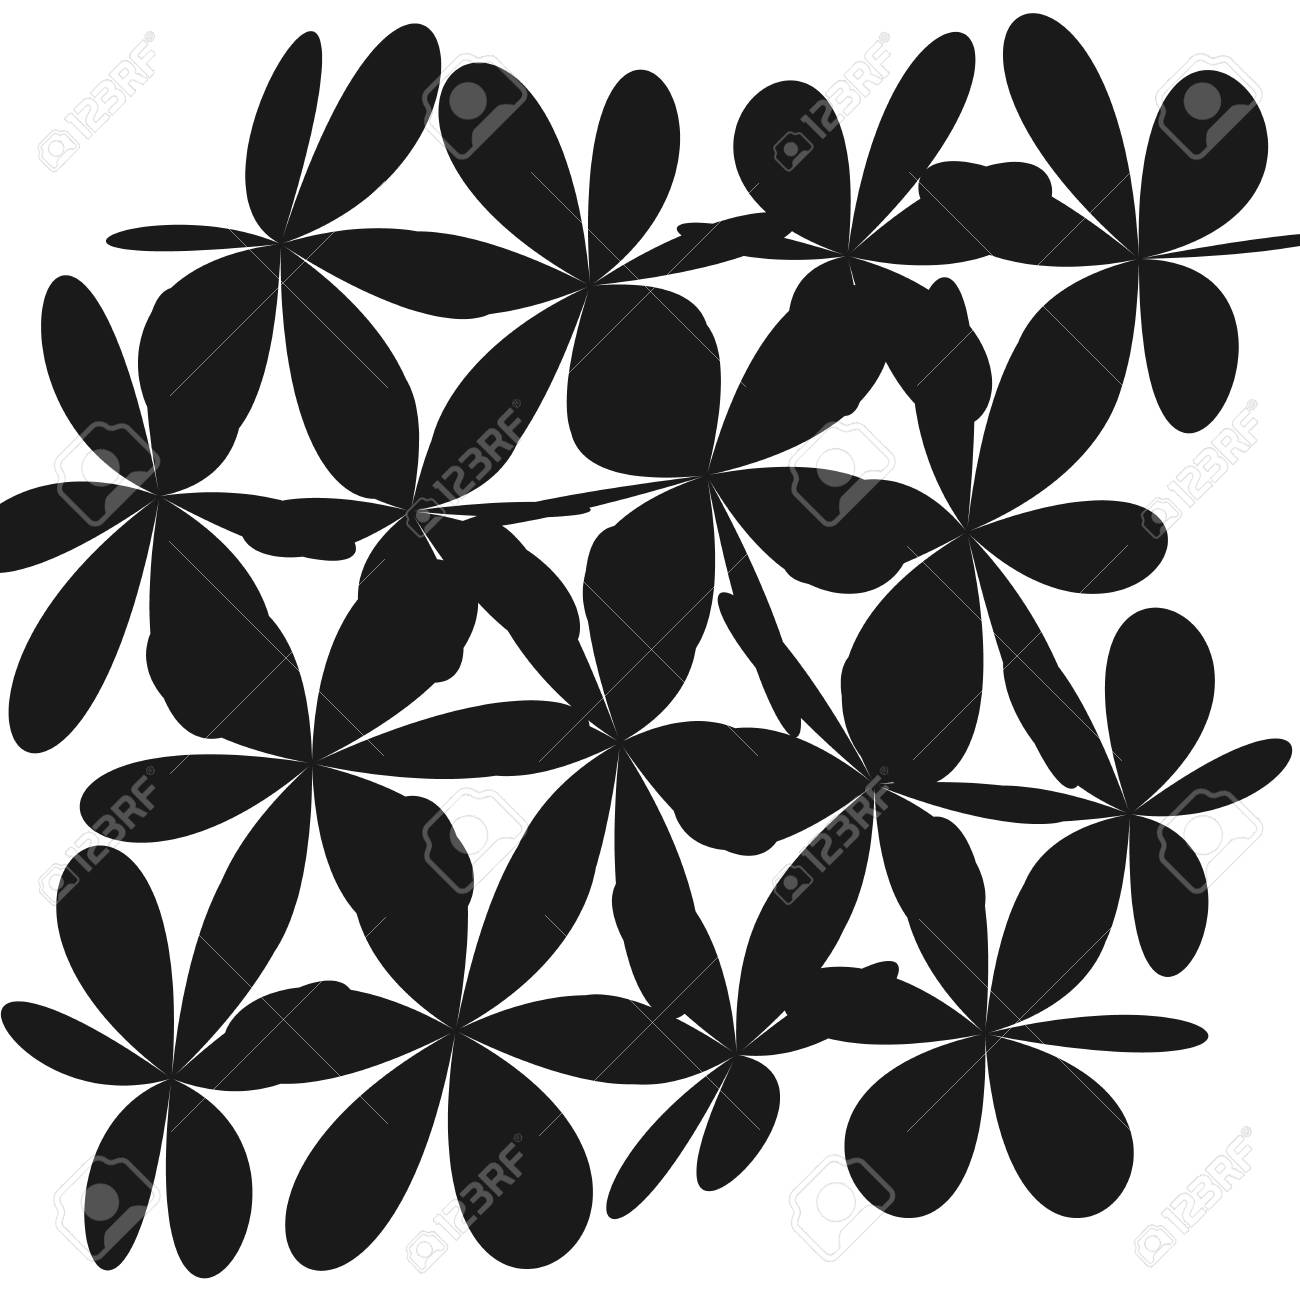 Whimsical Floral Background Flower Black And White Exquisite